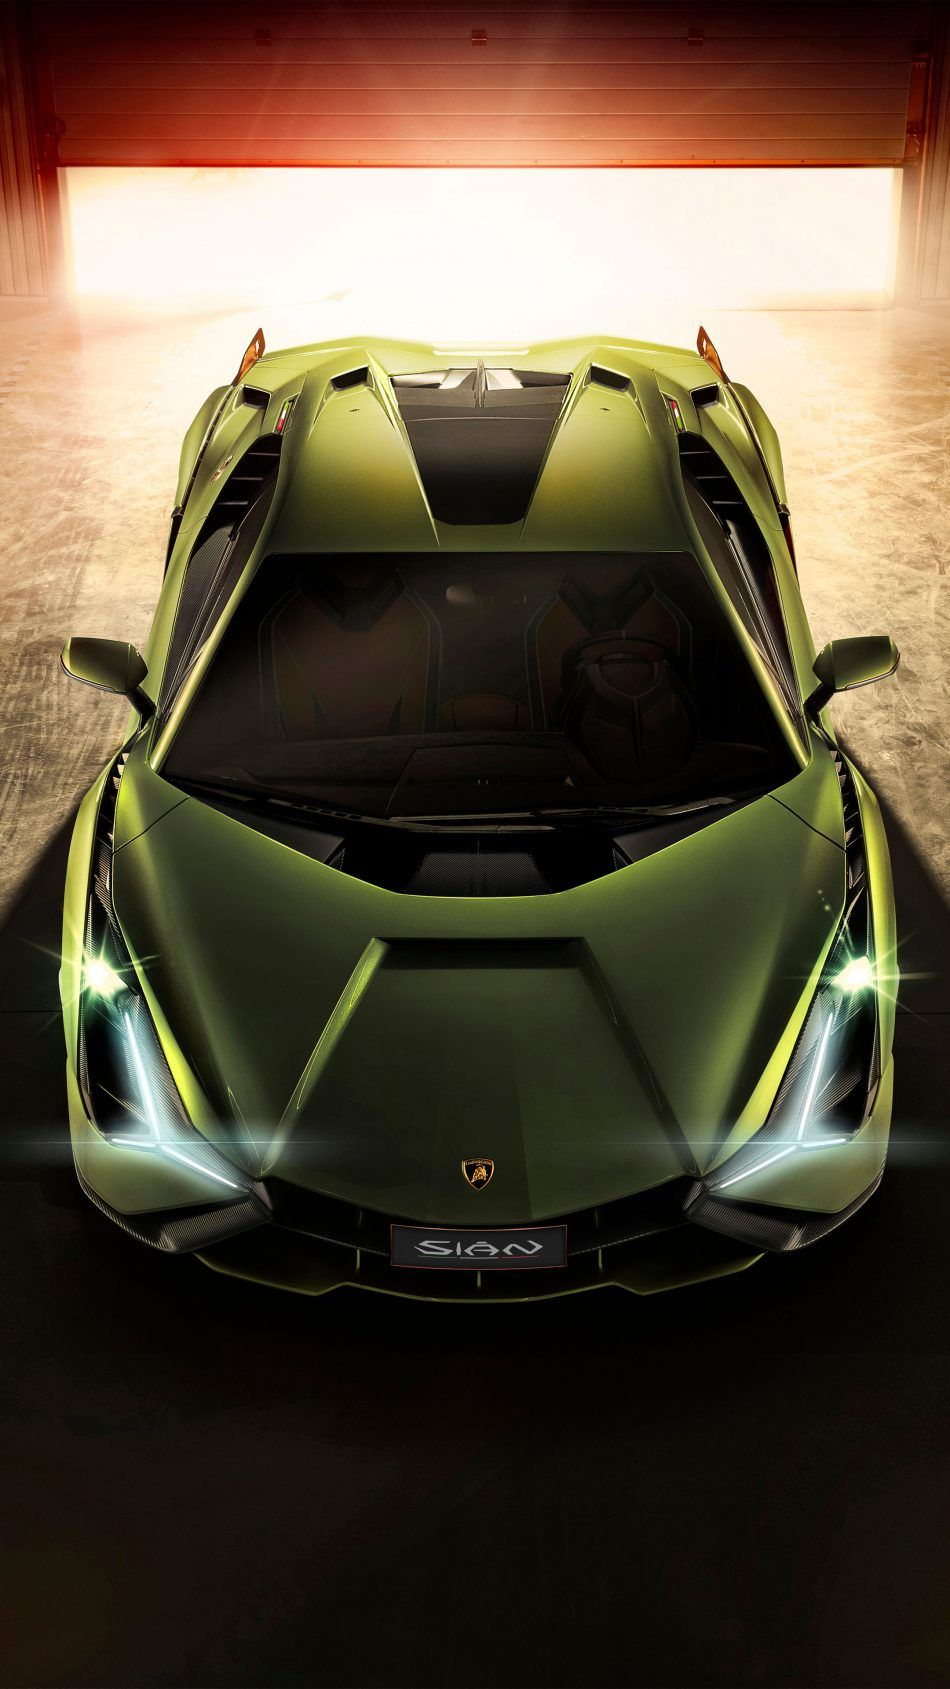 Lamborghini Sian 2019 4k Ultra Hd Mobile Wallpaper Sports Cars Luxury Super Cars Car Wallpapers